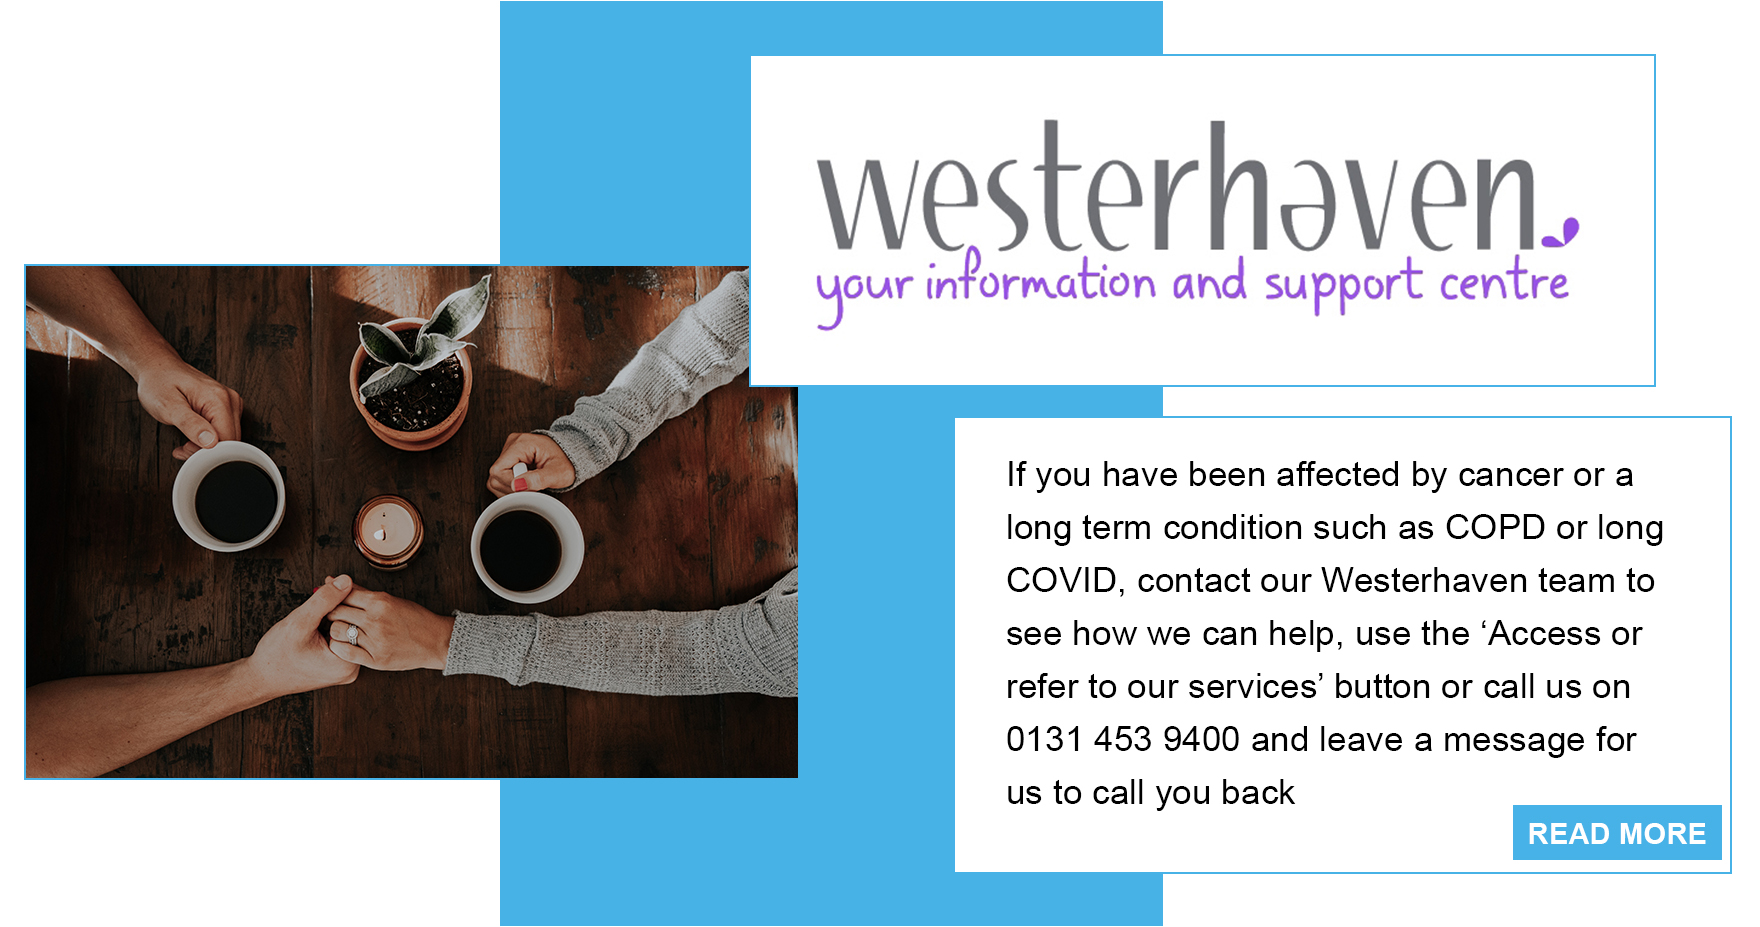 Westerhaven, Cancer support, long term conditions